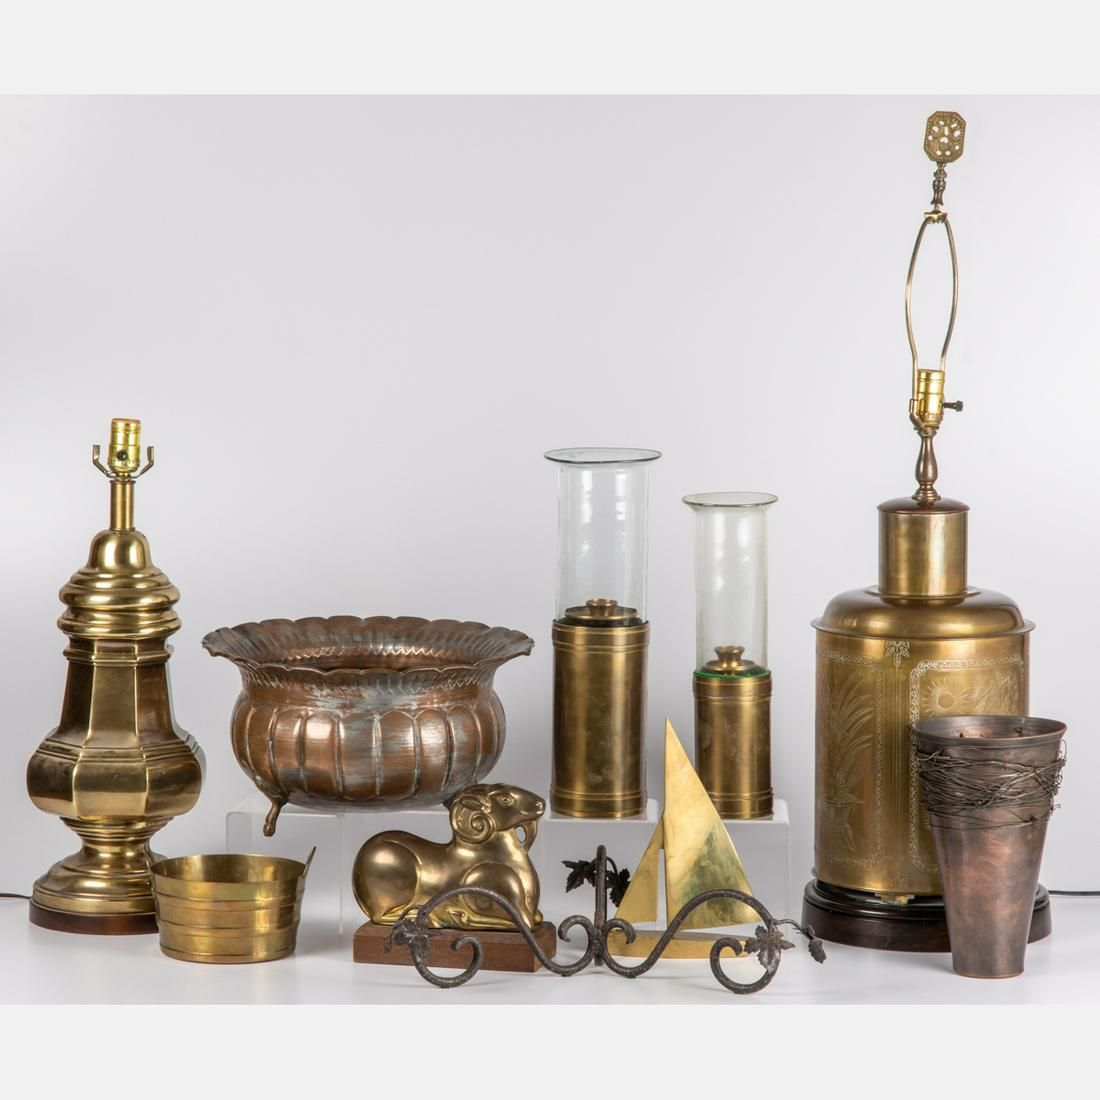 A Miscellaneous Collection of Brass and Copper